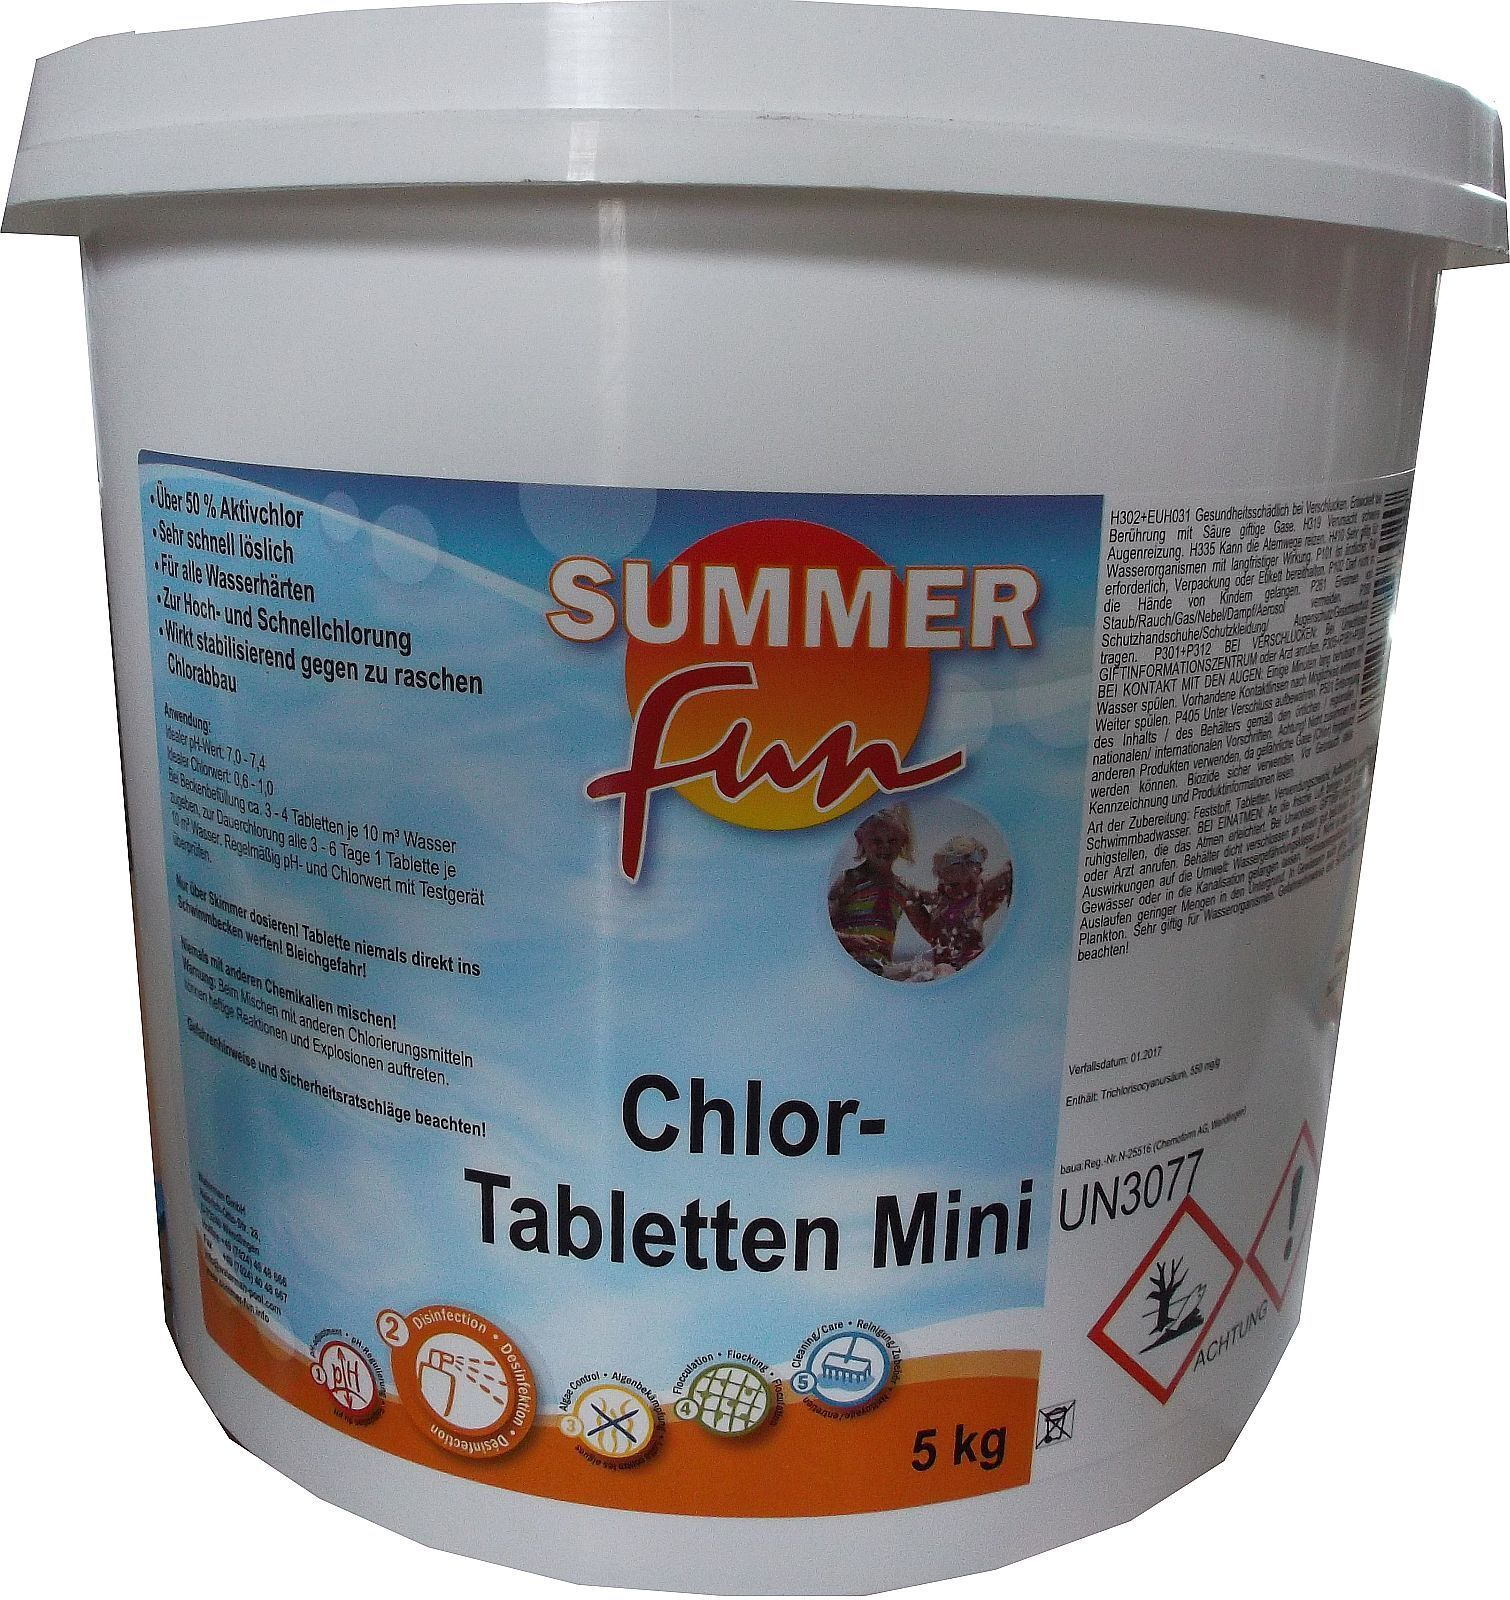 Chlortabletten Mini Pool Summer Fun 502010109 Chlor Tabletten Mini 5 Kg Eimer